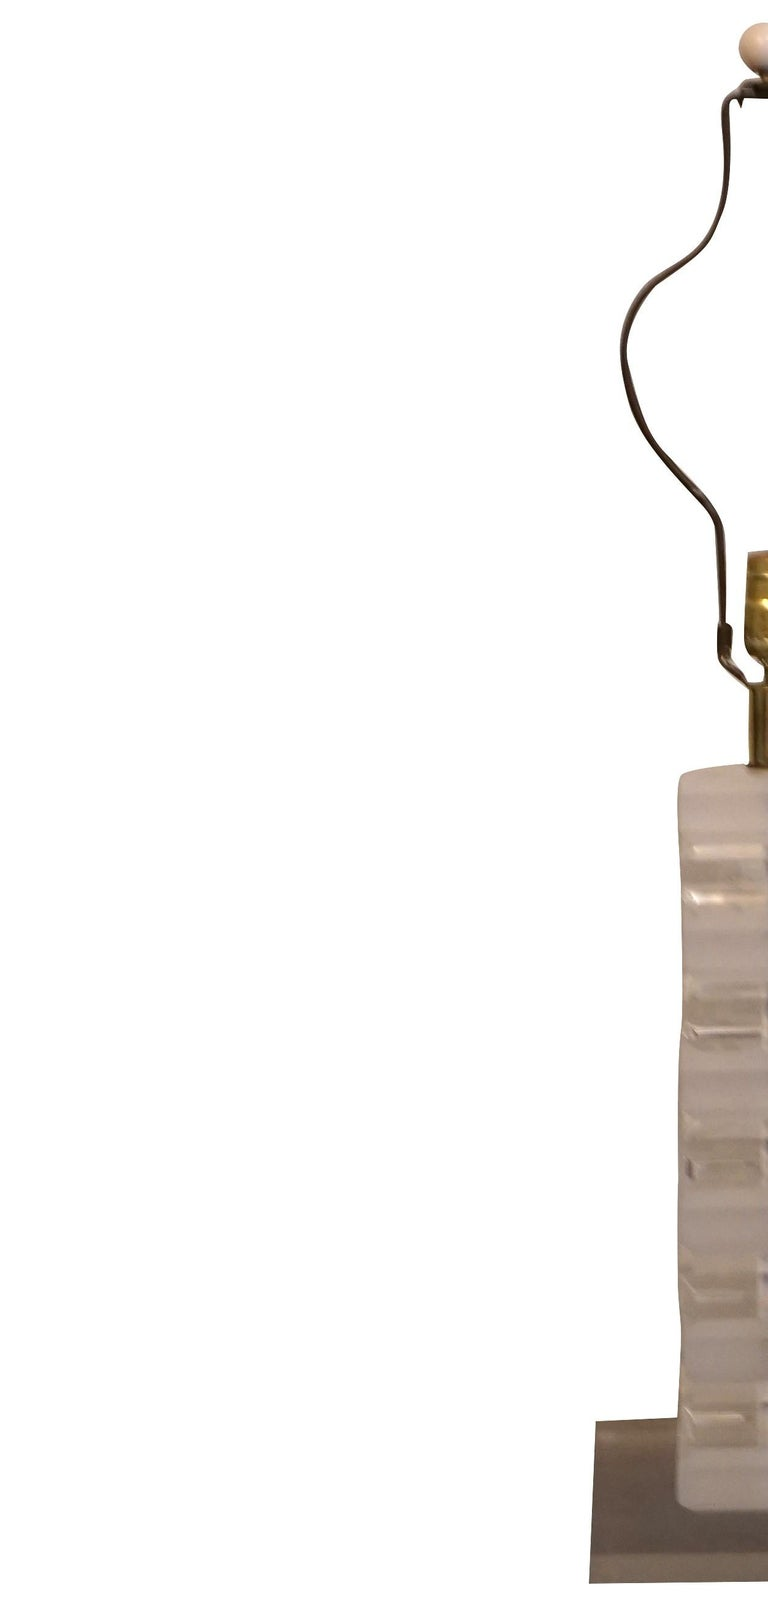 Mid-Century Modern clear frosted acrylic Lucite lamp in the style of Karl Springer, furnished without lamp shade.  Karl Springer was born in 1931 Berlin, Germany and passed away in 1991 Manhattan. Most of his time he lived in New York City where